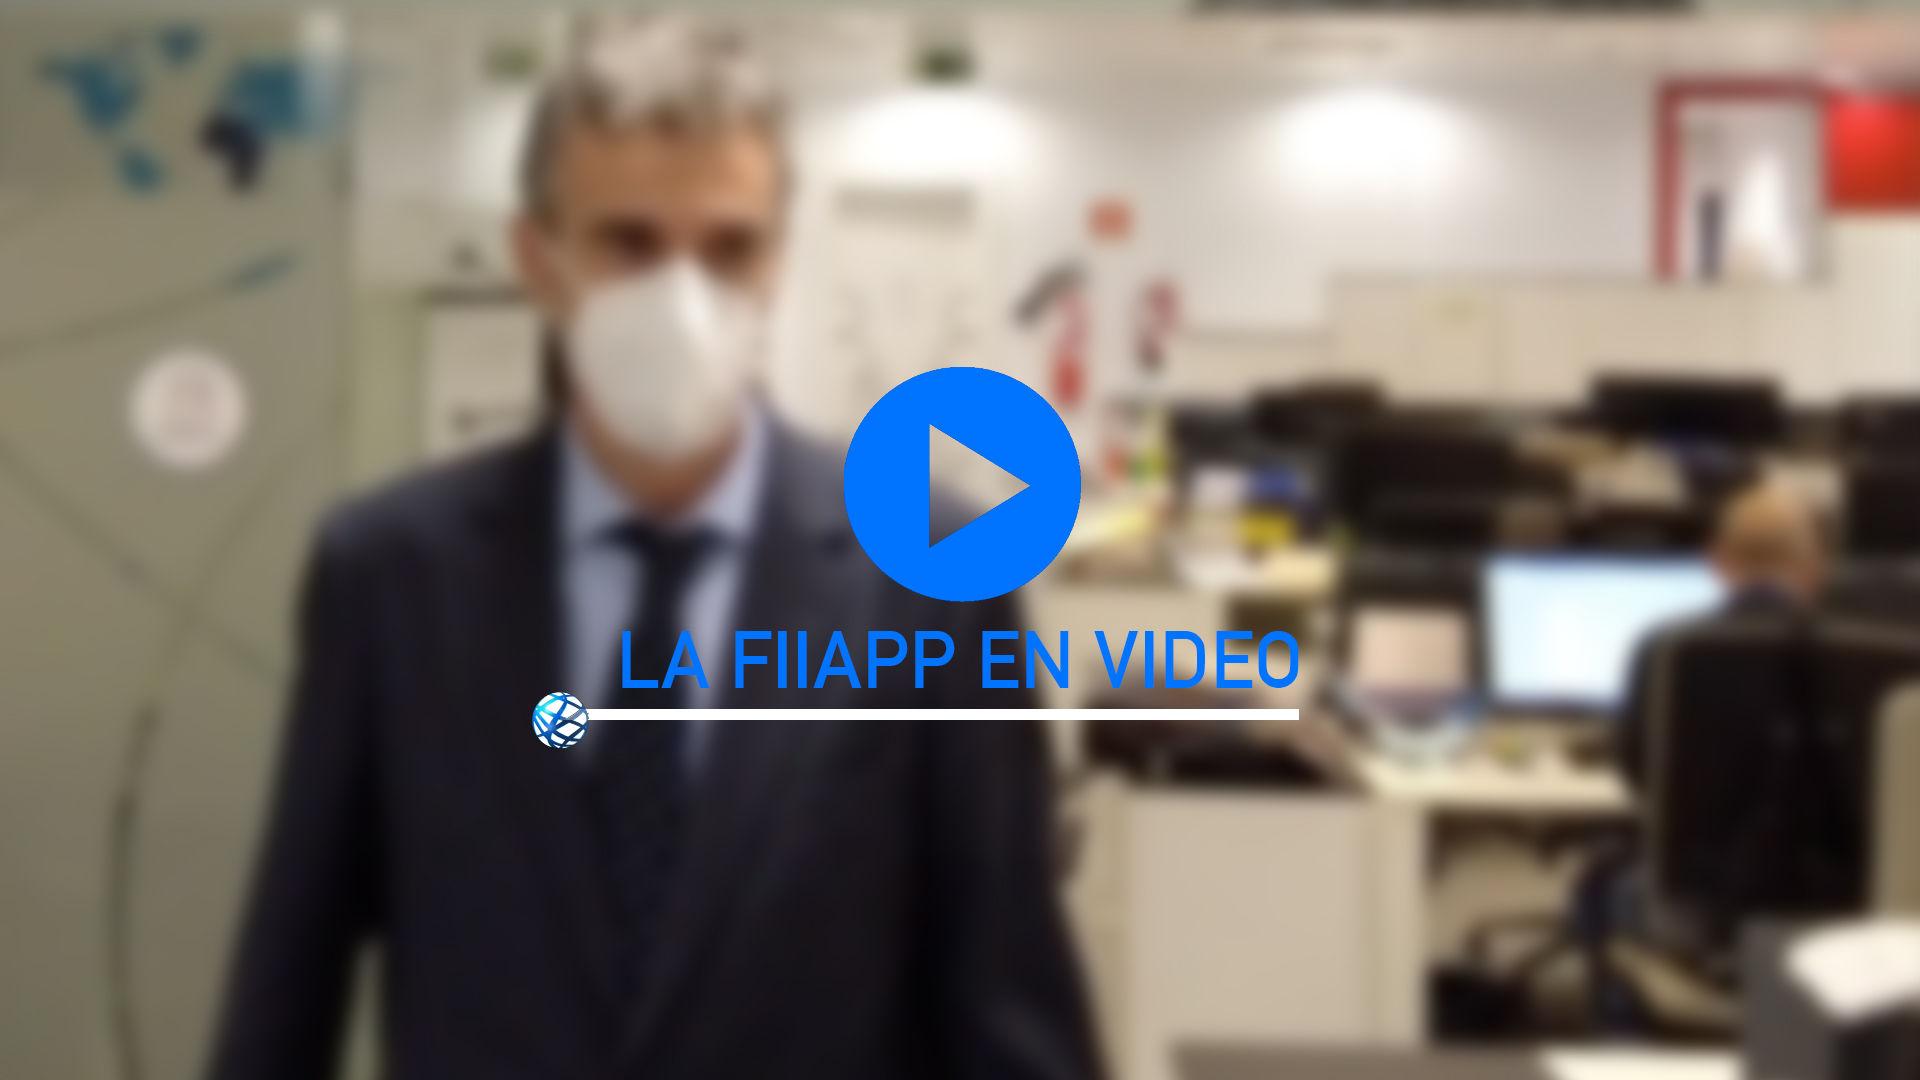 We interview Miguel de Domingo, Director of Security, Peace and Development, one of the areas that make up FIIAPP and that manages projects such as EL PAcCTO and GARSI-SAHEL.